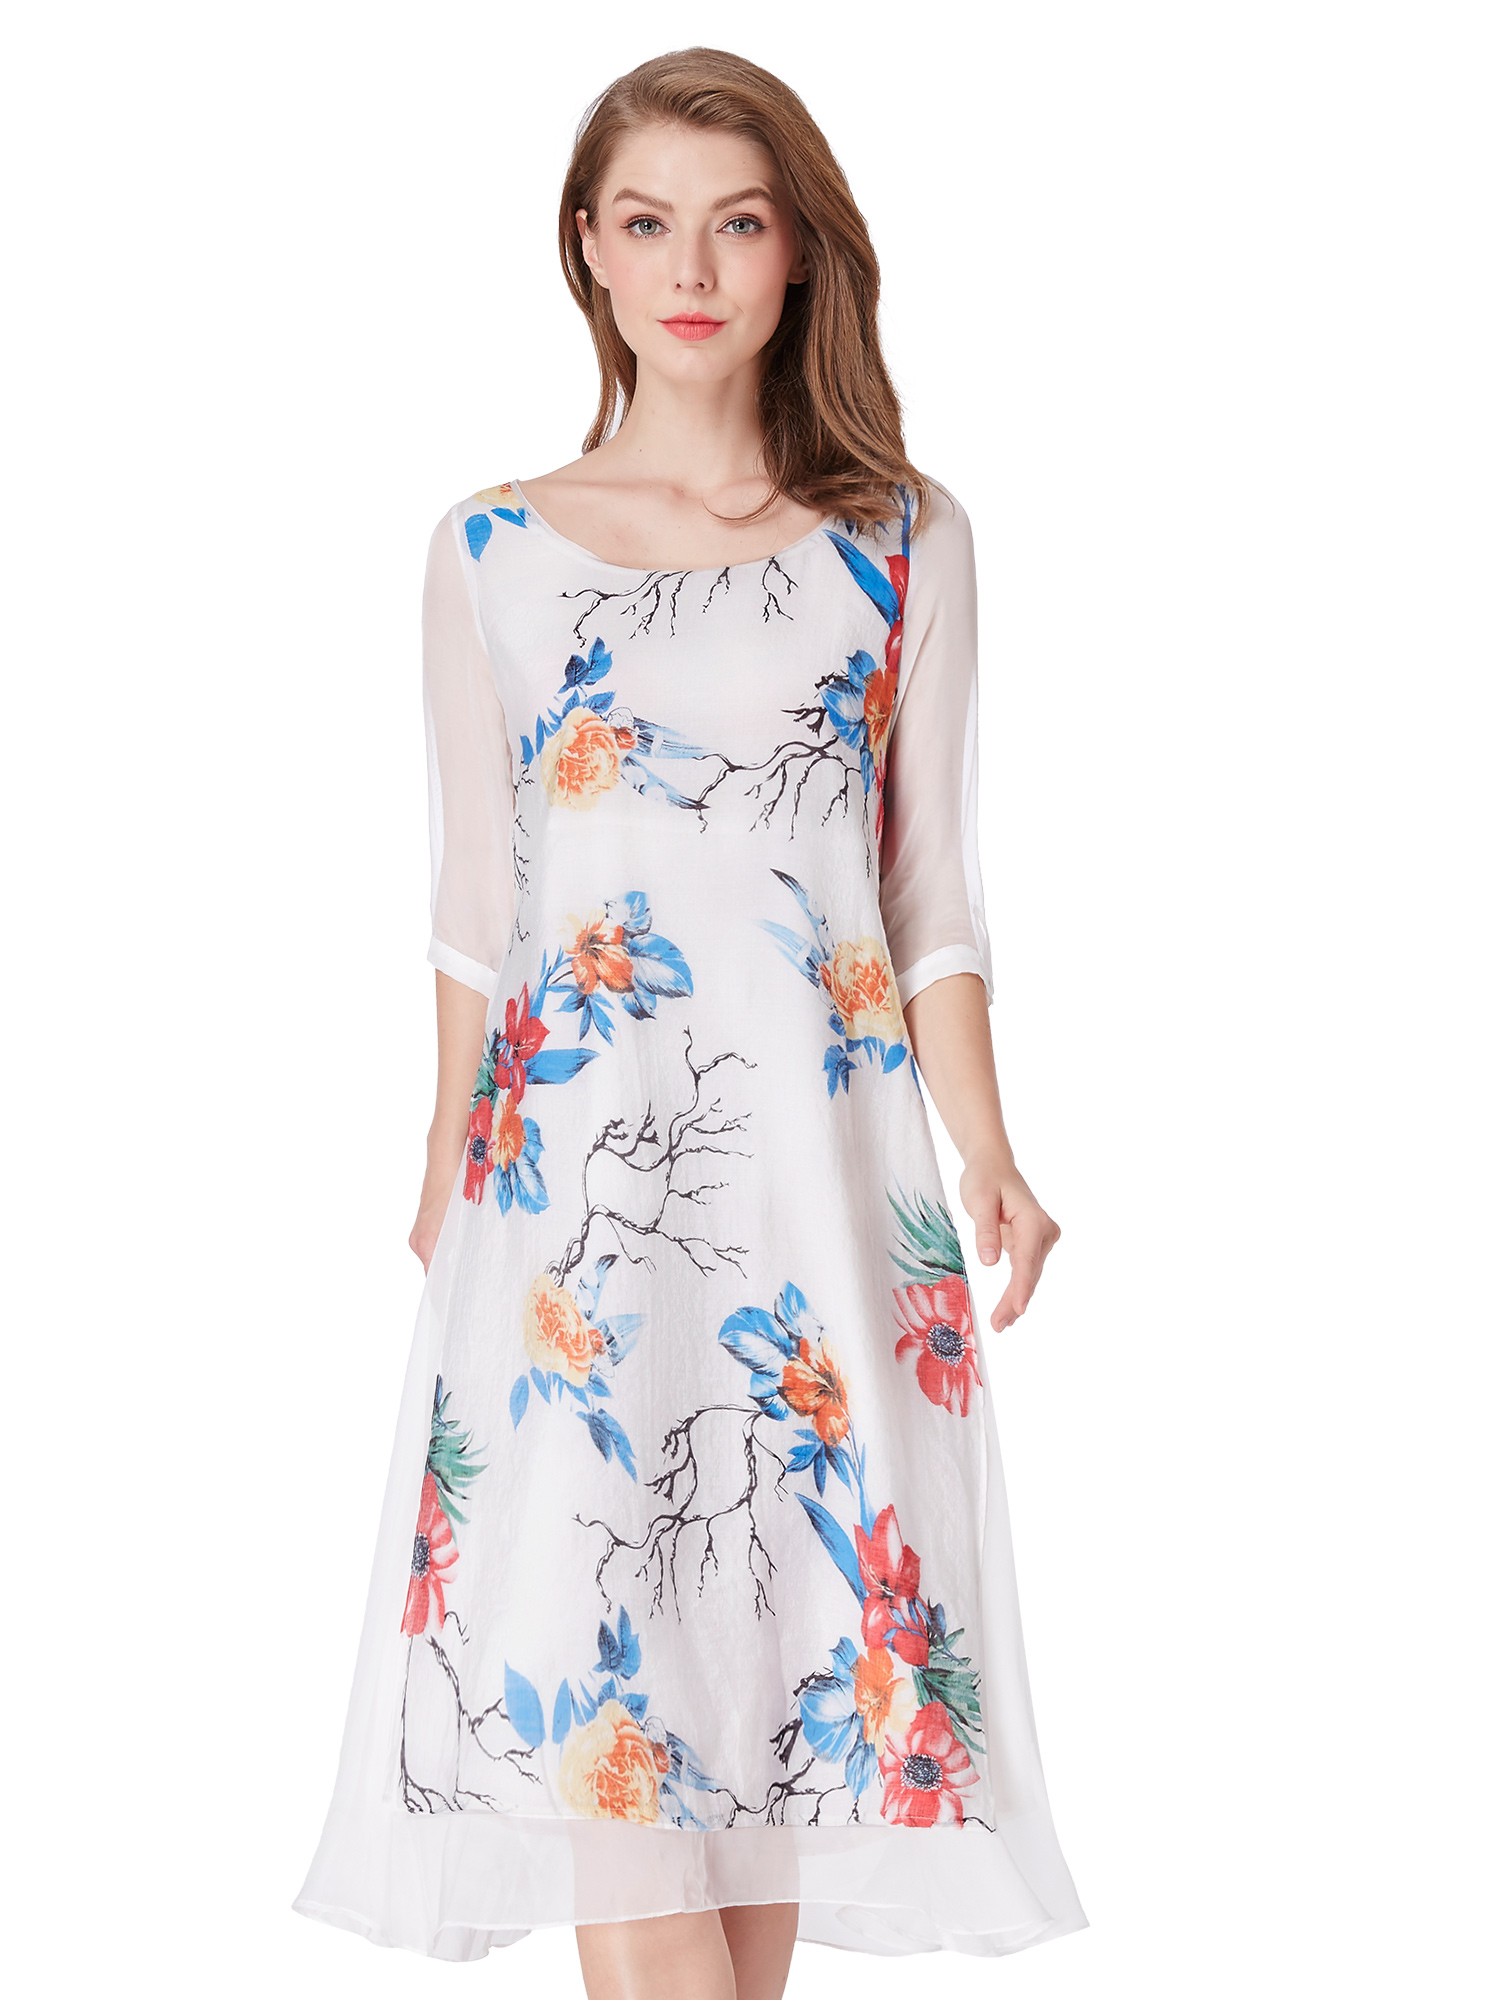 Alisa-Pan-Short-Floral-Print-Casual-Spring-Dress-Chinese-Traditional-Skirt-04000